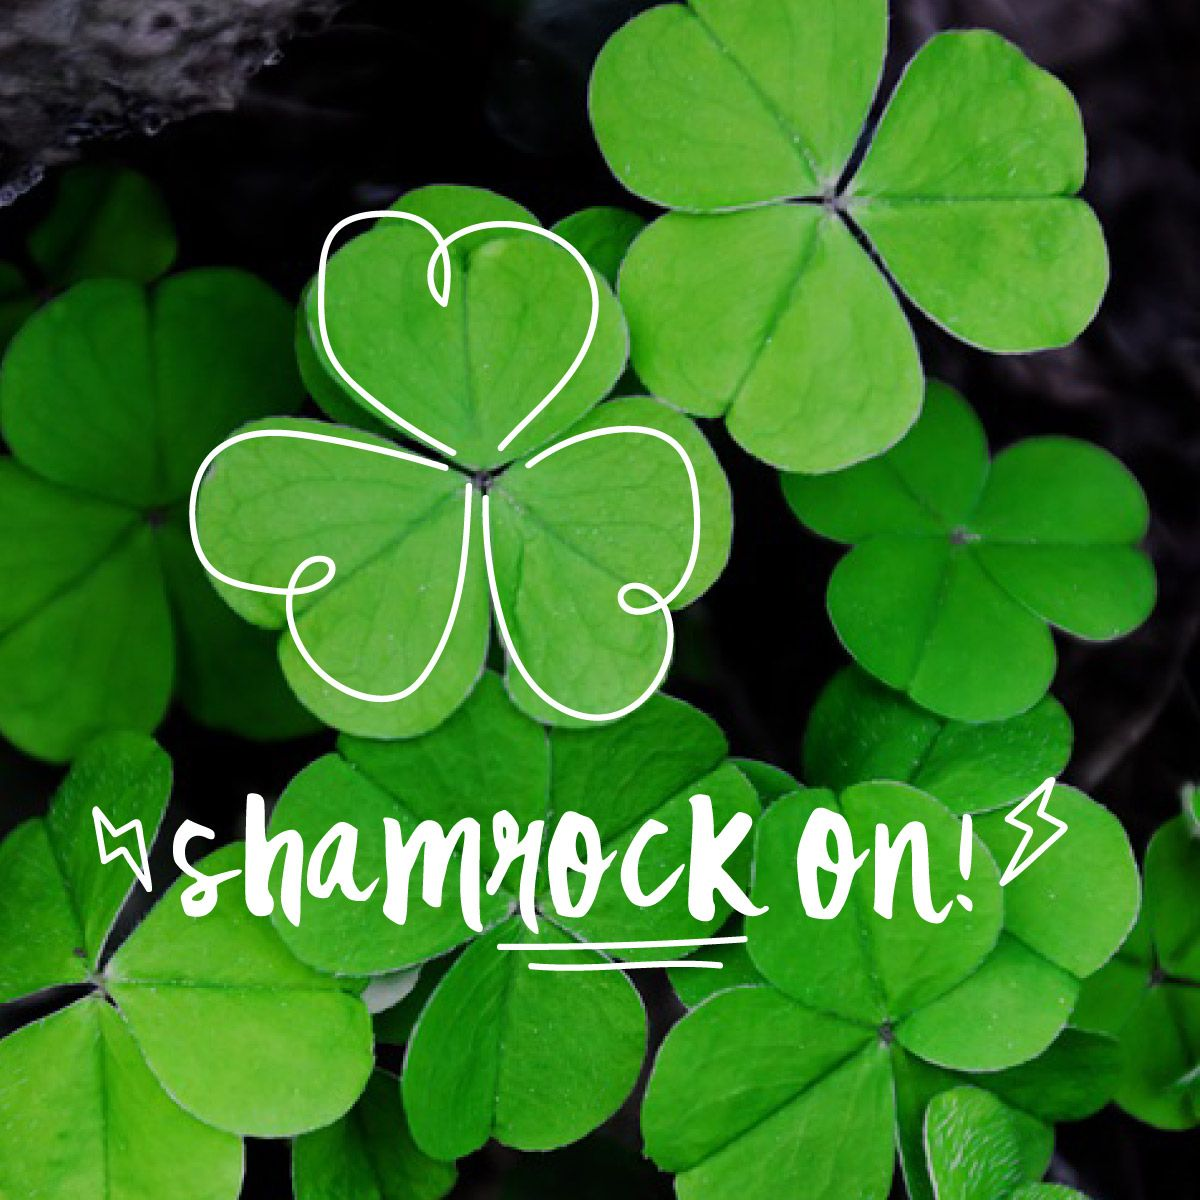 We hope your St. Patrick's Day ROCKS! What do you usually